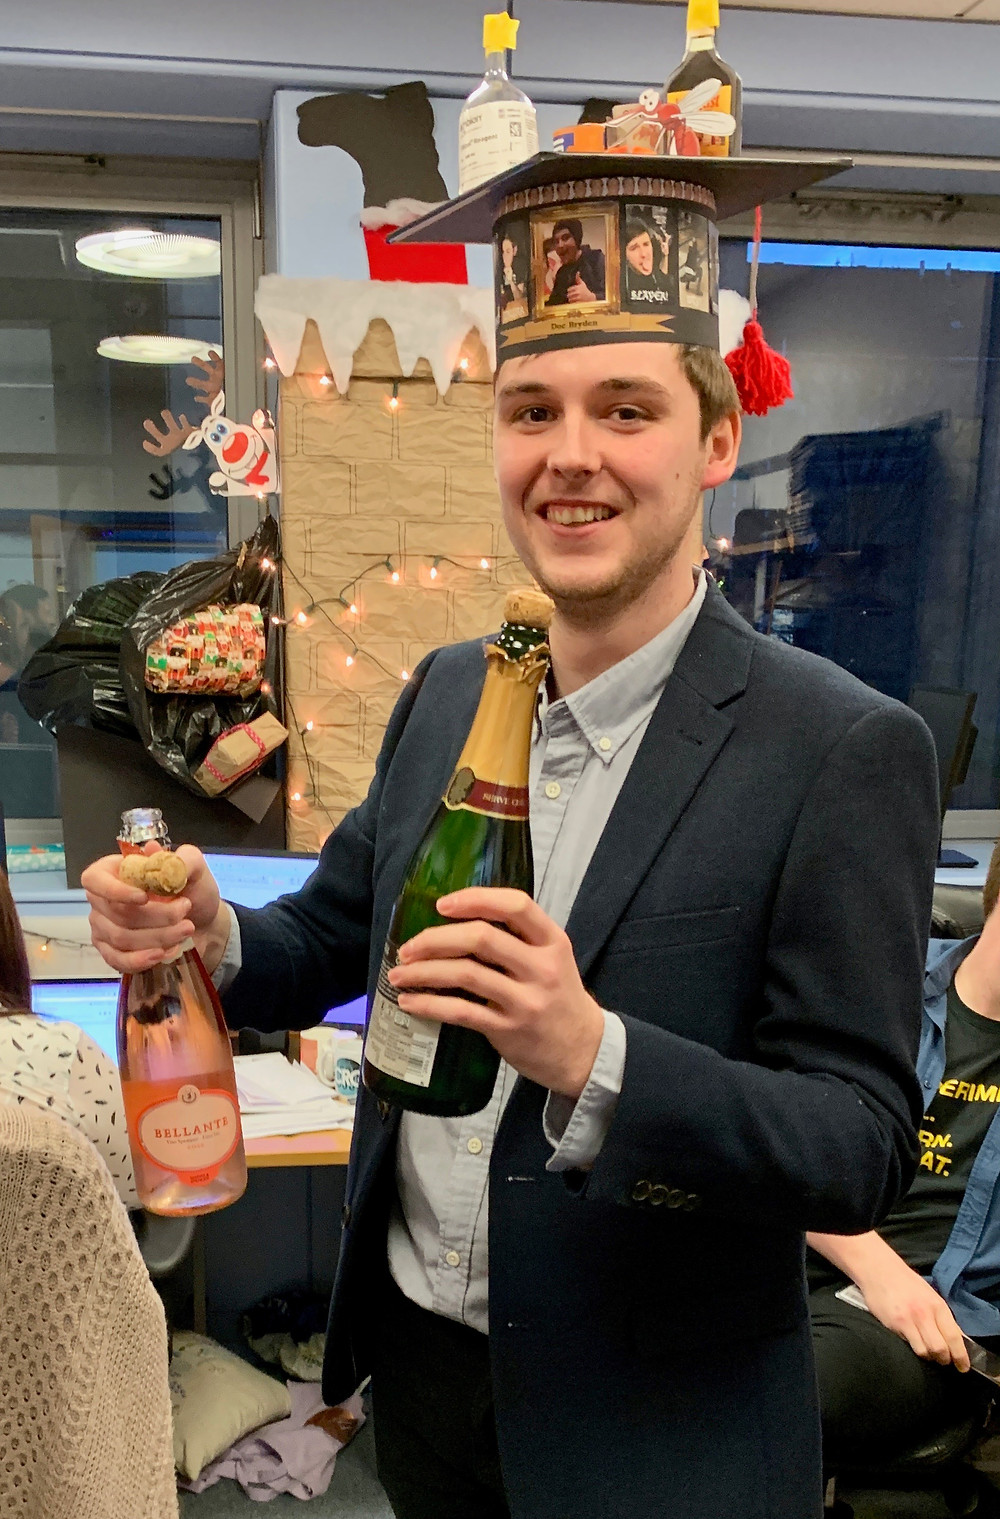 Here is Steven with his traditional academic hat. As tradition dictates it comes festooned with an eclectic mix of steven-related items and memories.